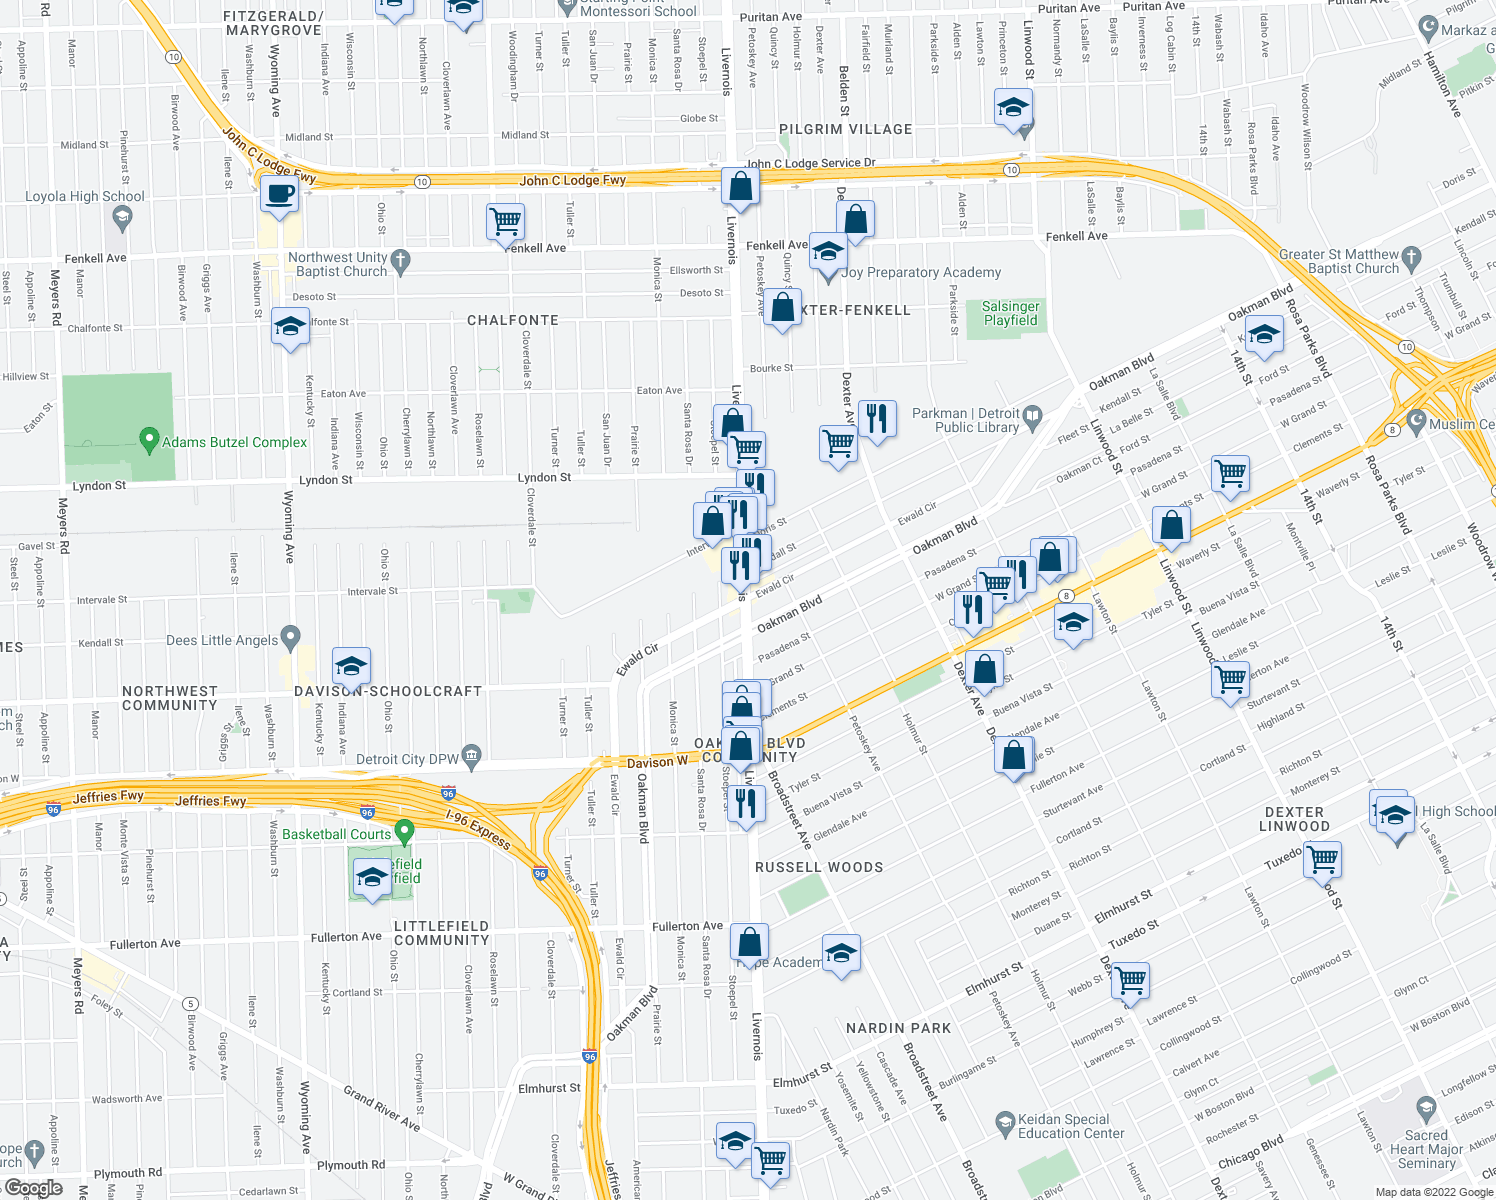 map of restaurants, bars, coffee shops, grocery stores, and more near Ewald Cir in Detroit